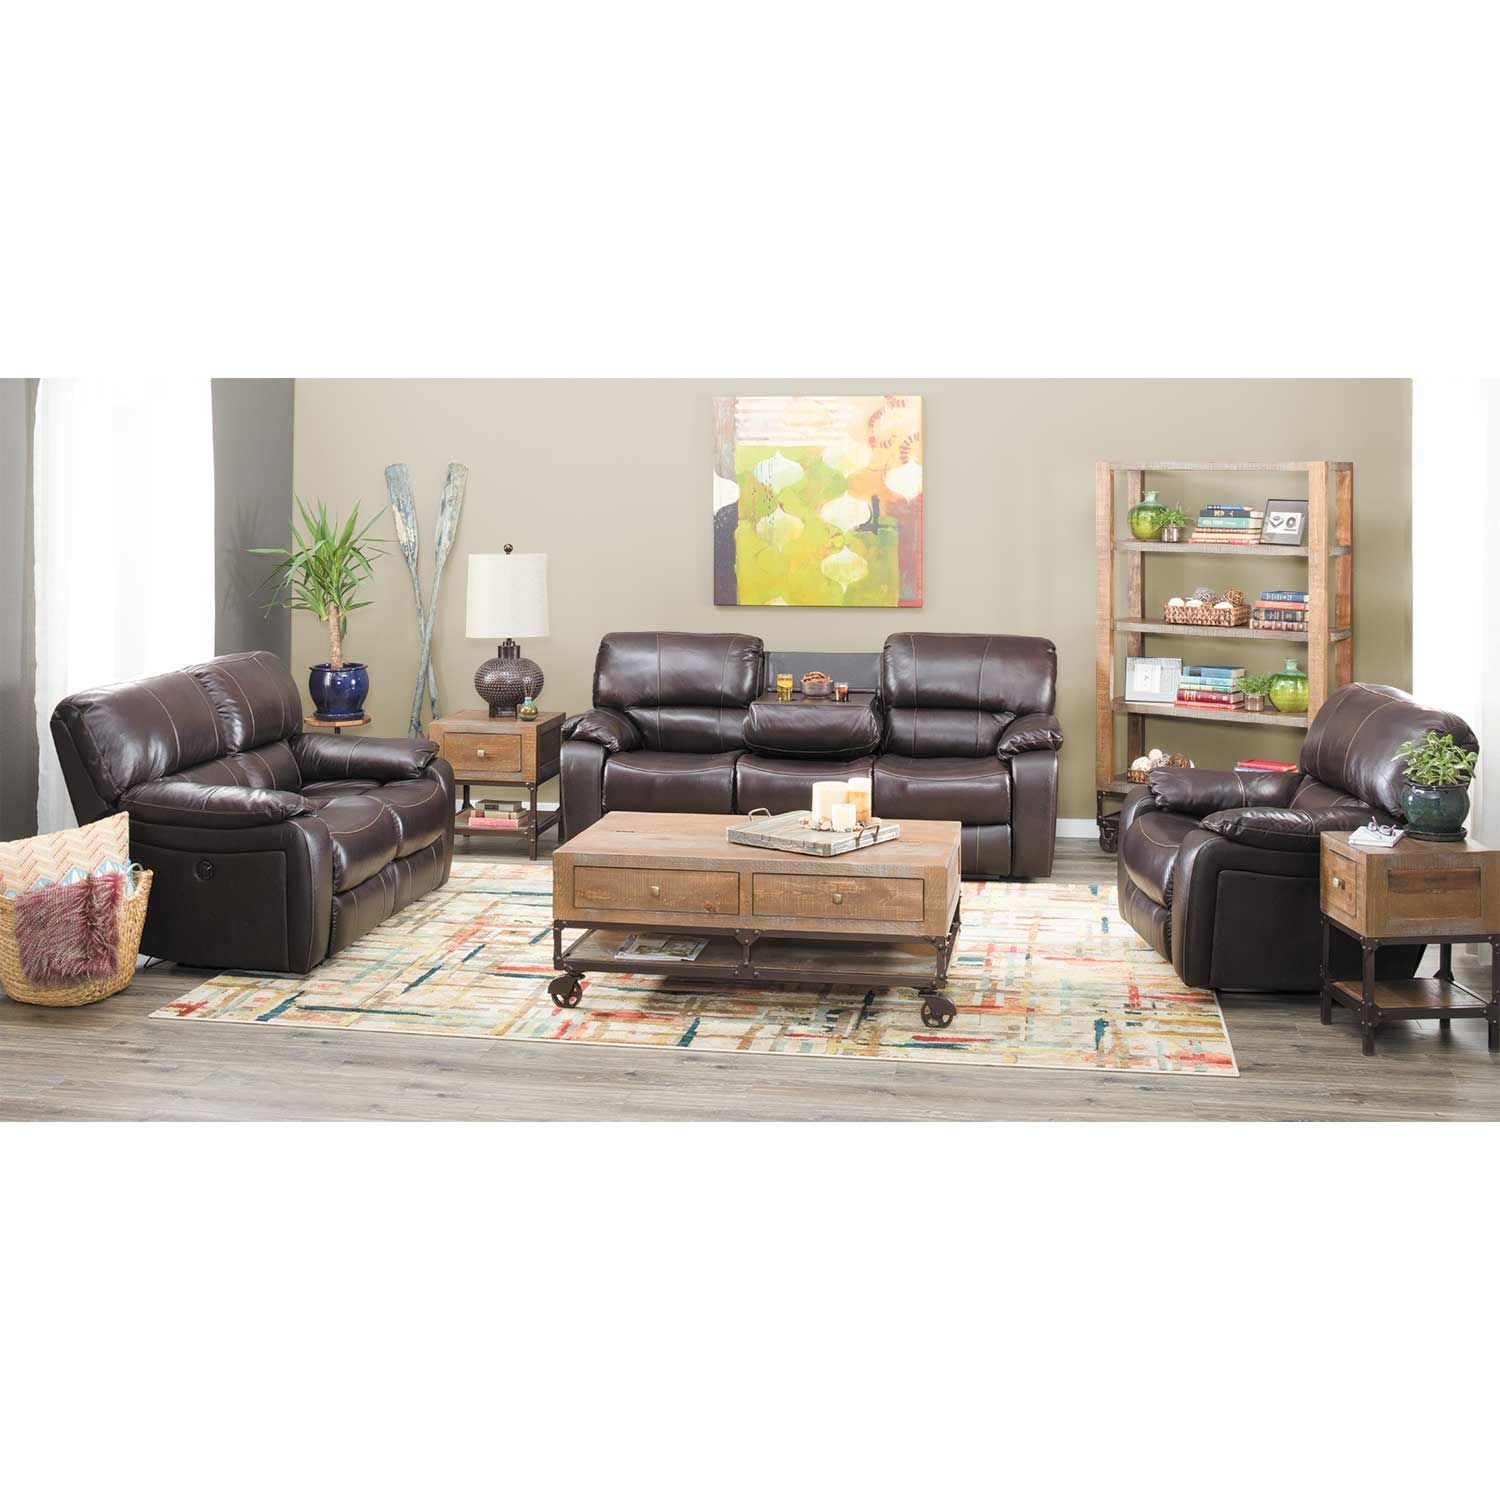 Picture of Wade Brown Top Grain Leather Reclining Loveseat